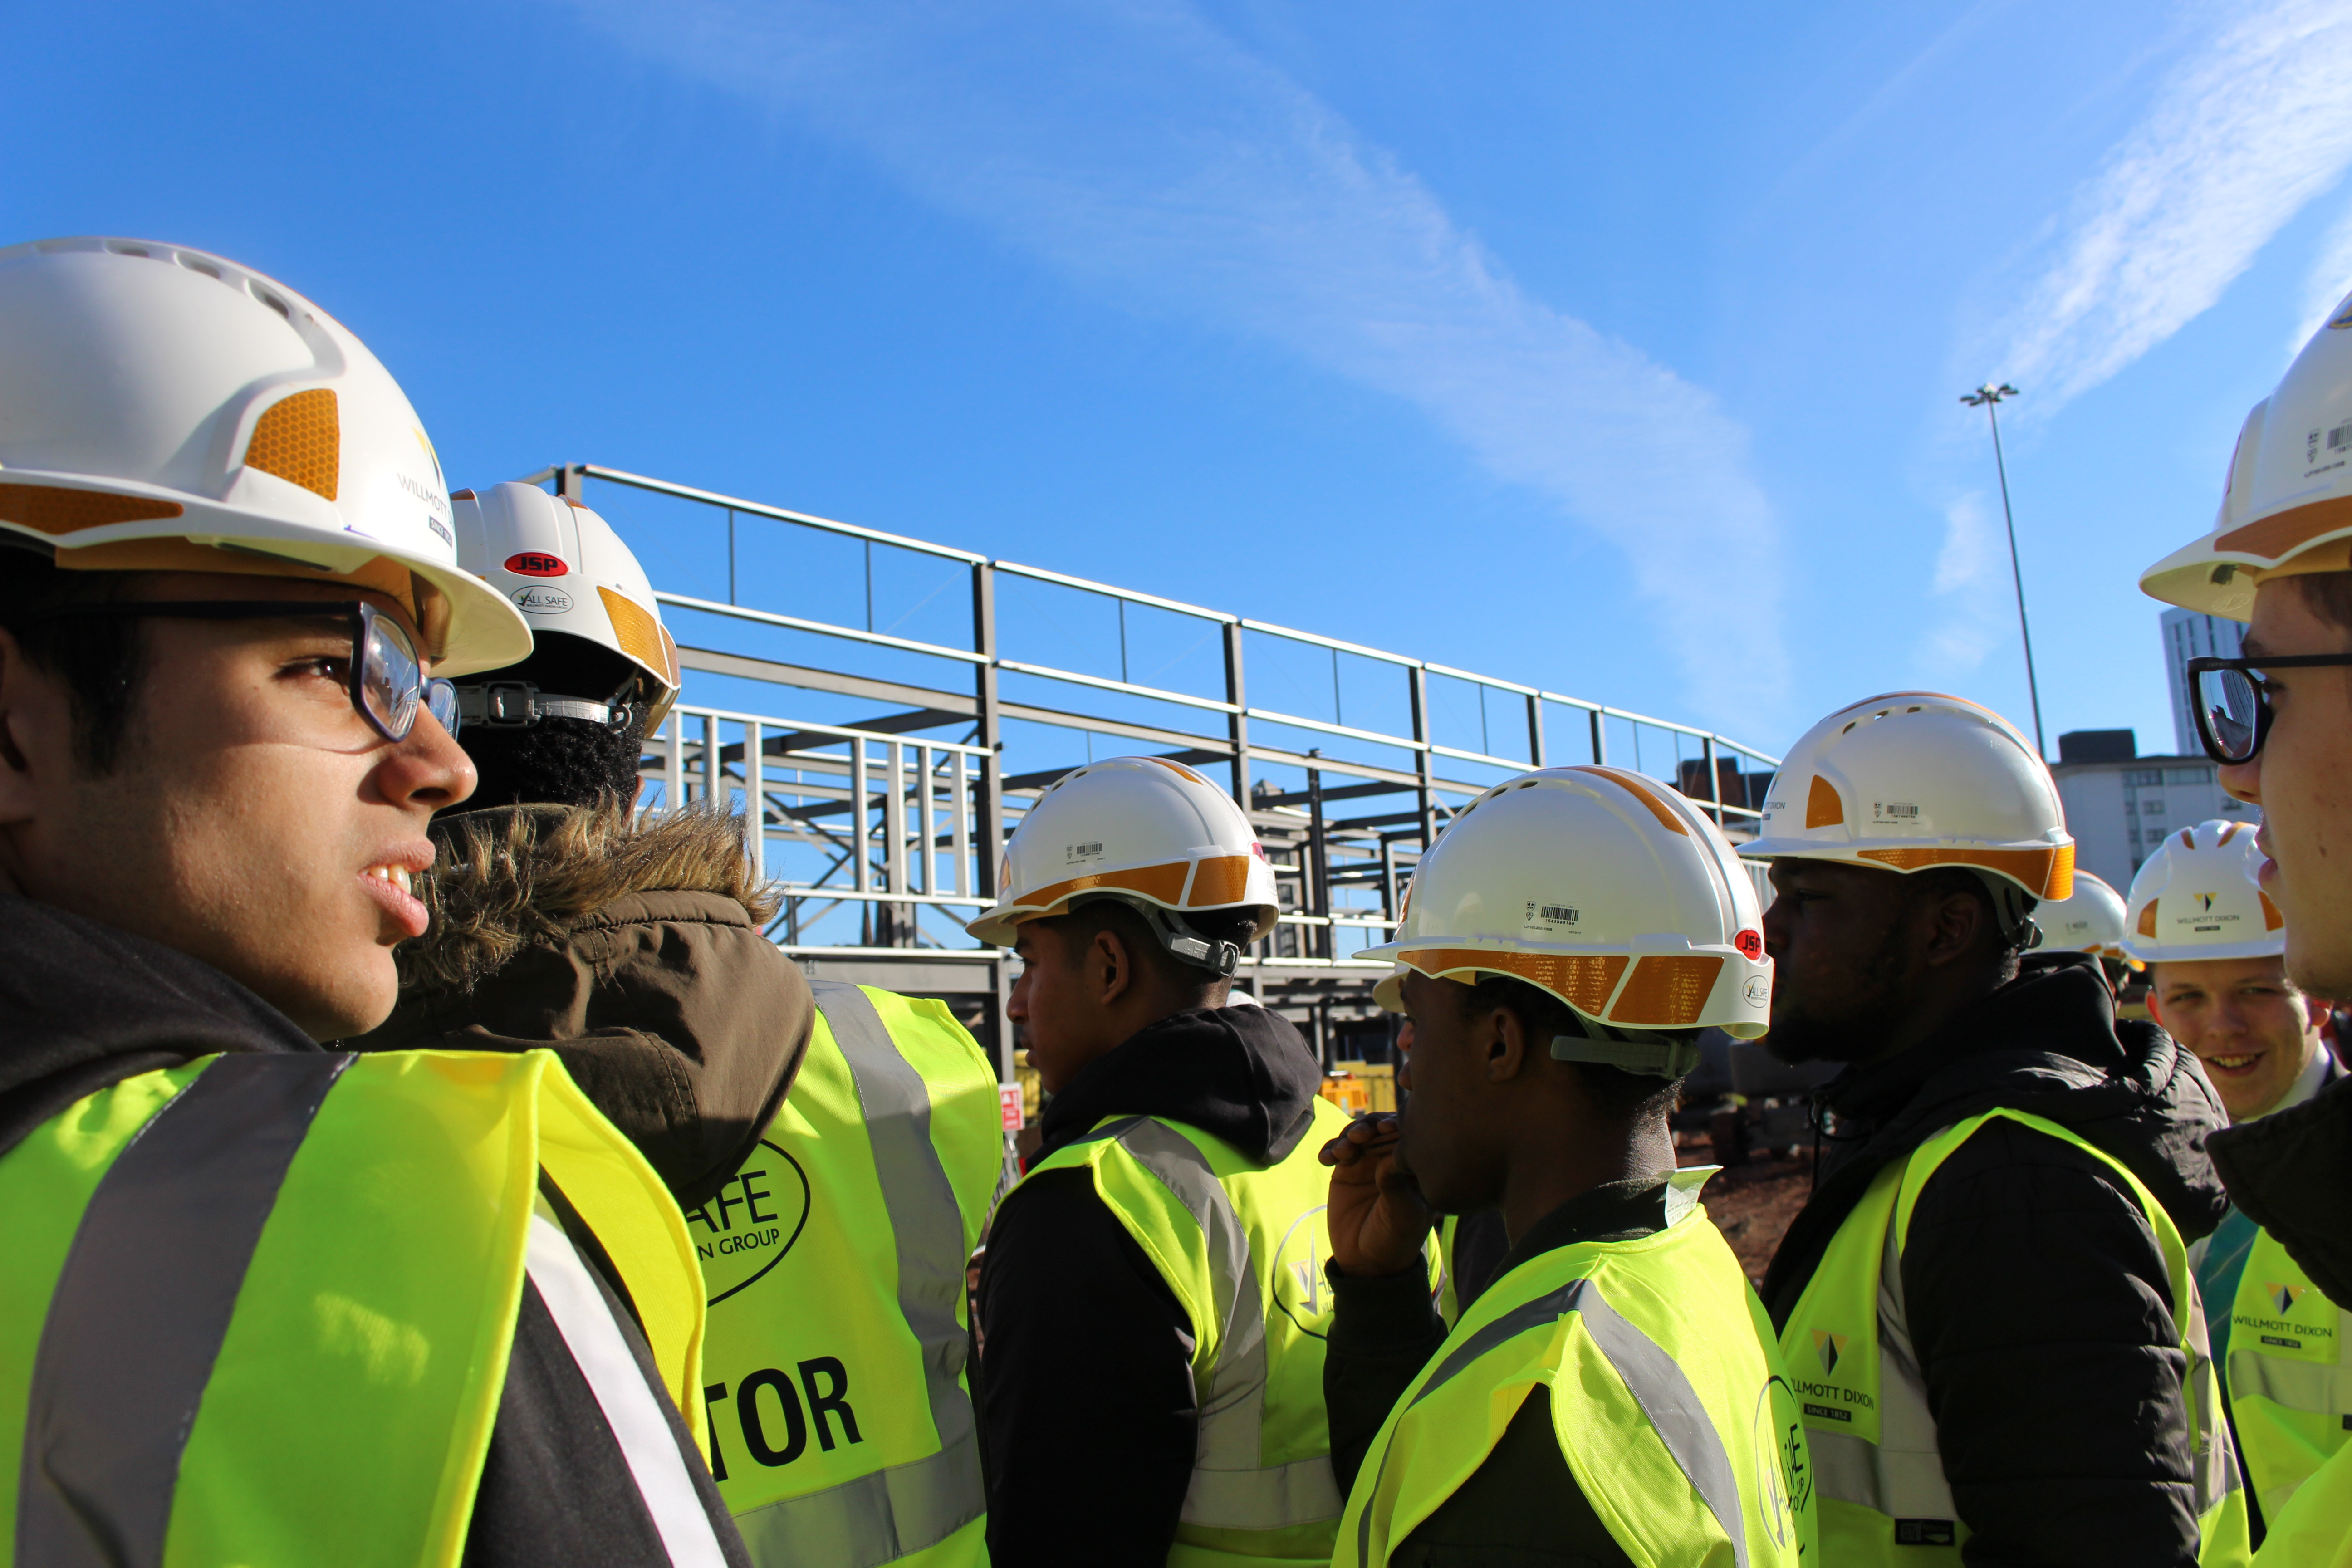 Student's learn about careers in construction